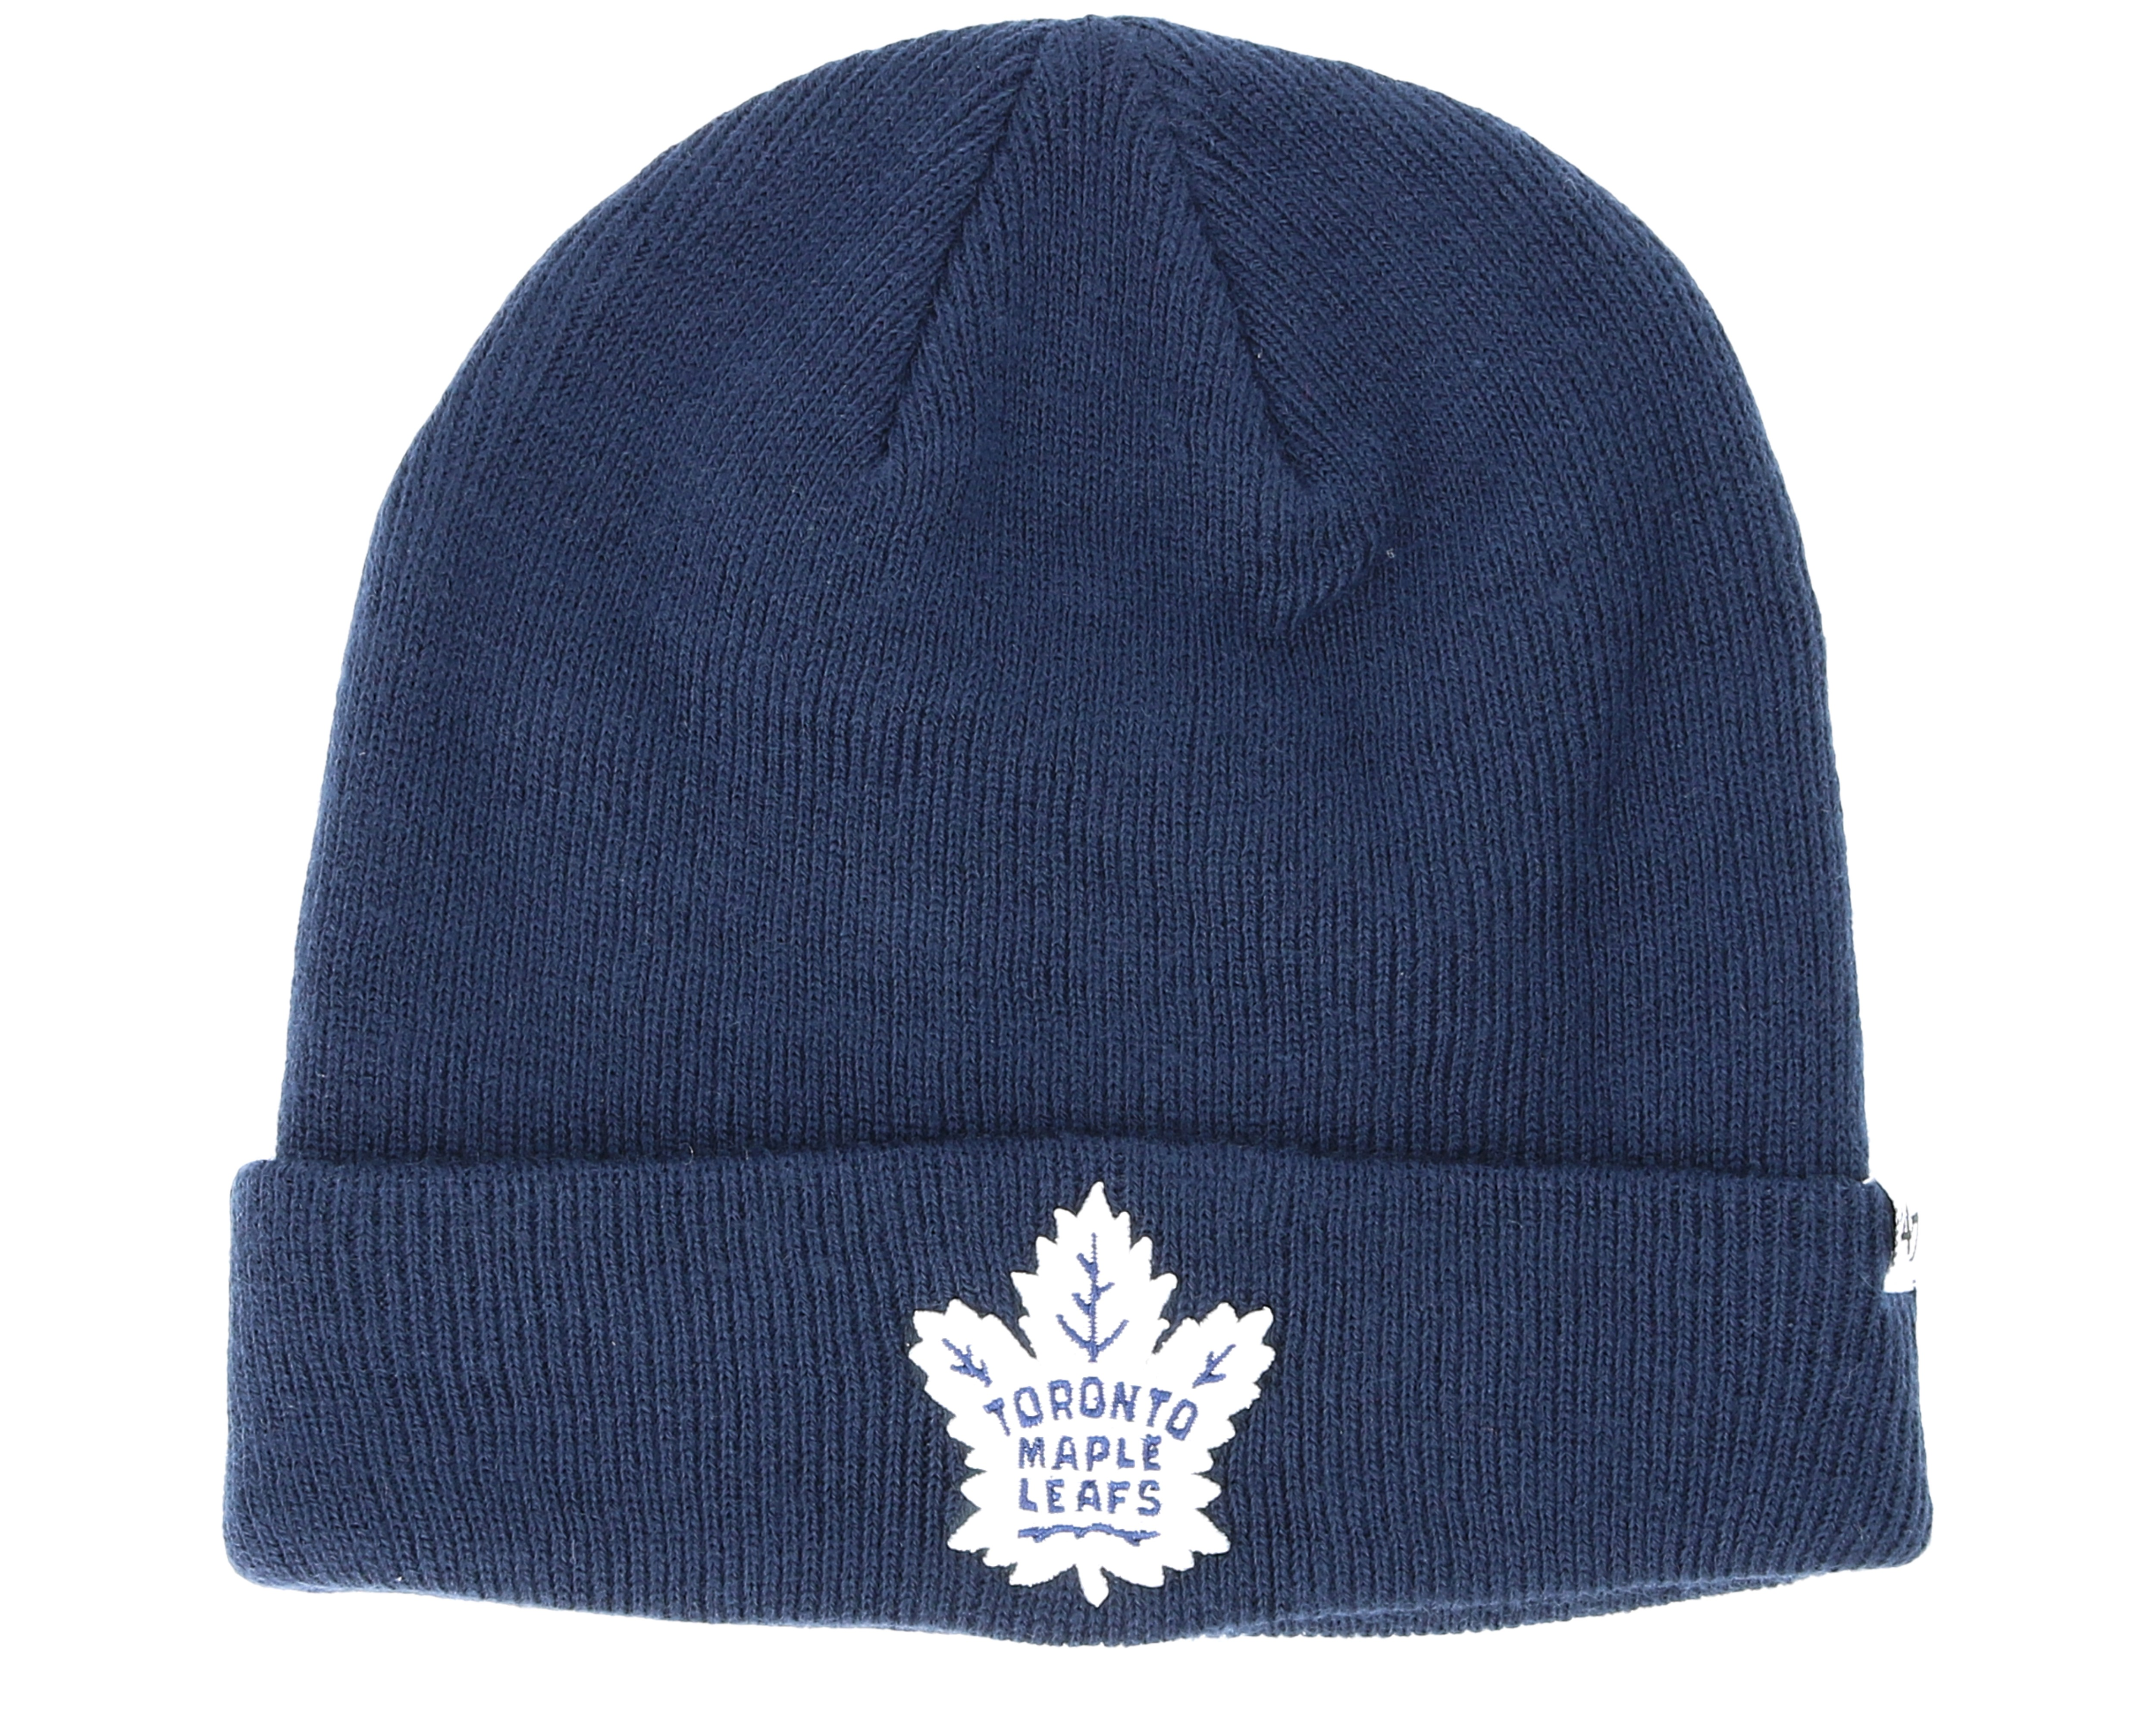 stereotype and maple leafs hat Shop a wide selection of toronto maple leafs hats at dick's sporting goods and order online for the finest quality products from the top brands you trust.